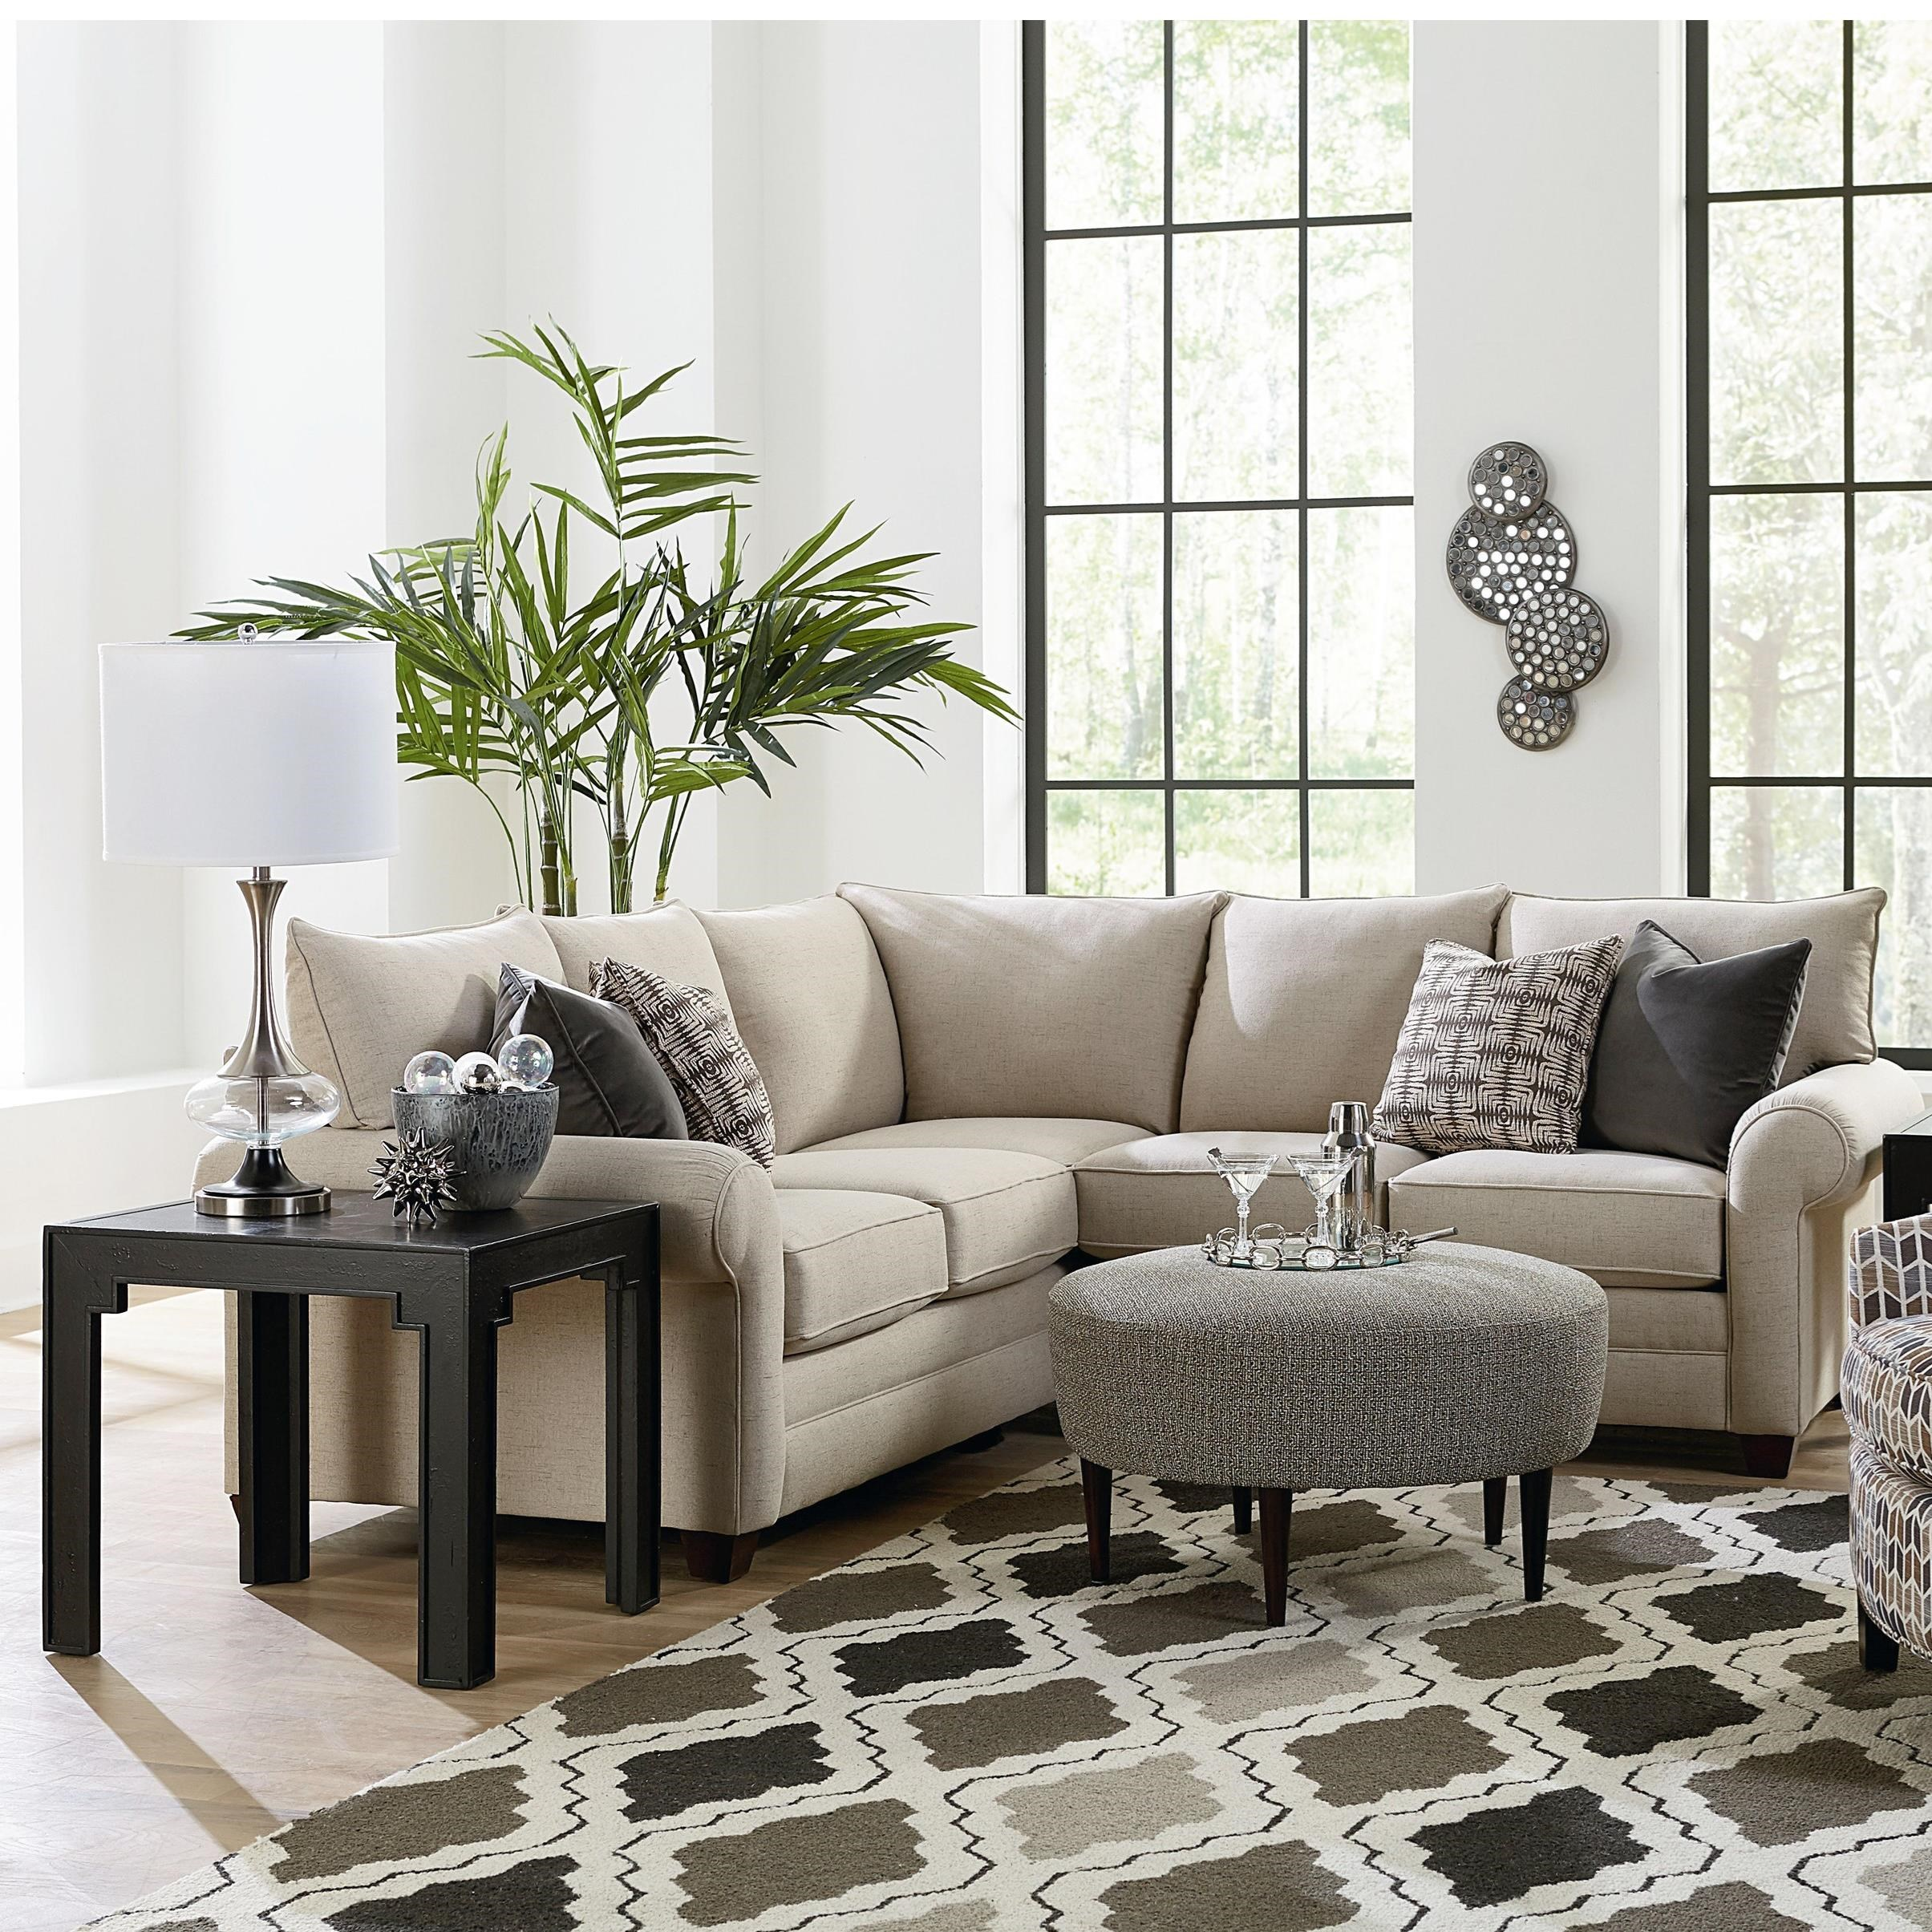 Cameron Sectional Living Room Group by Bassett at Esprit Decor Home Furnishings